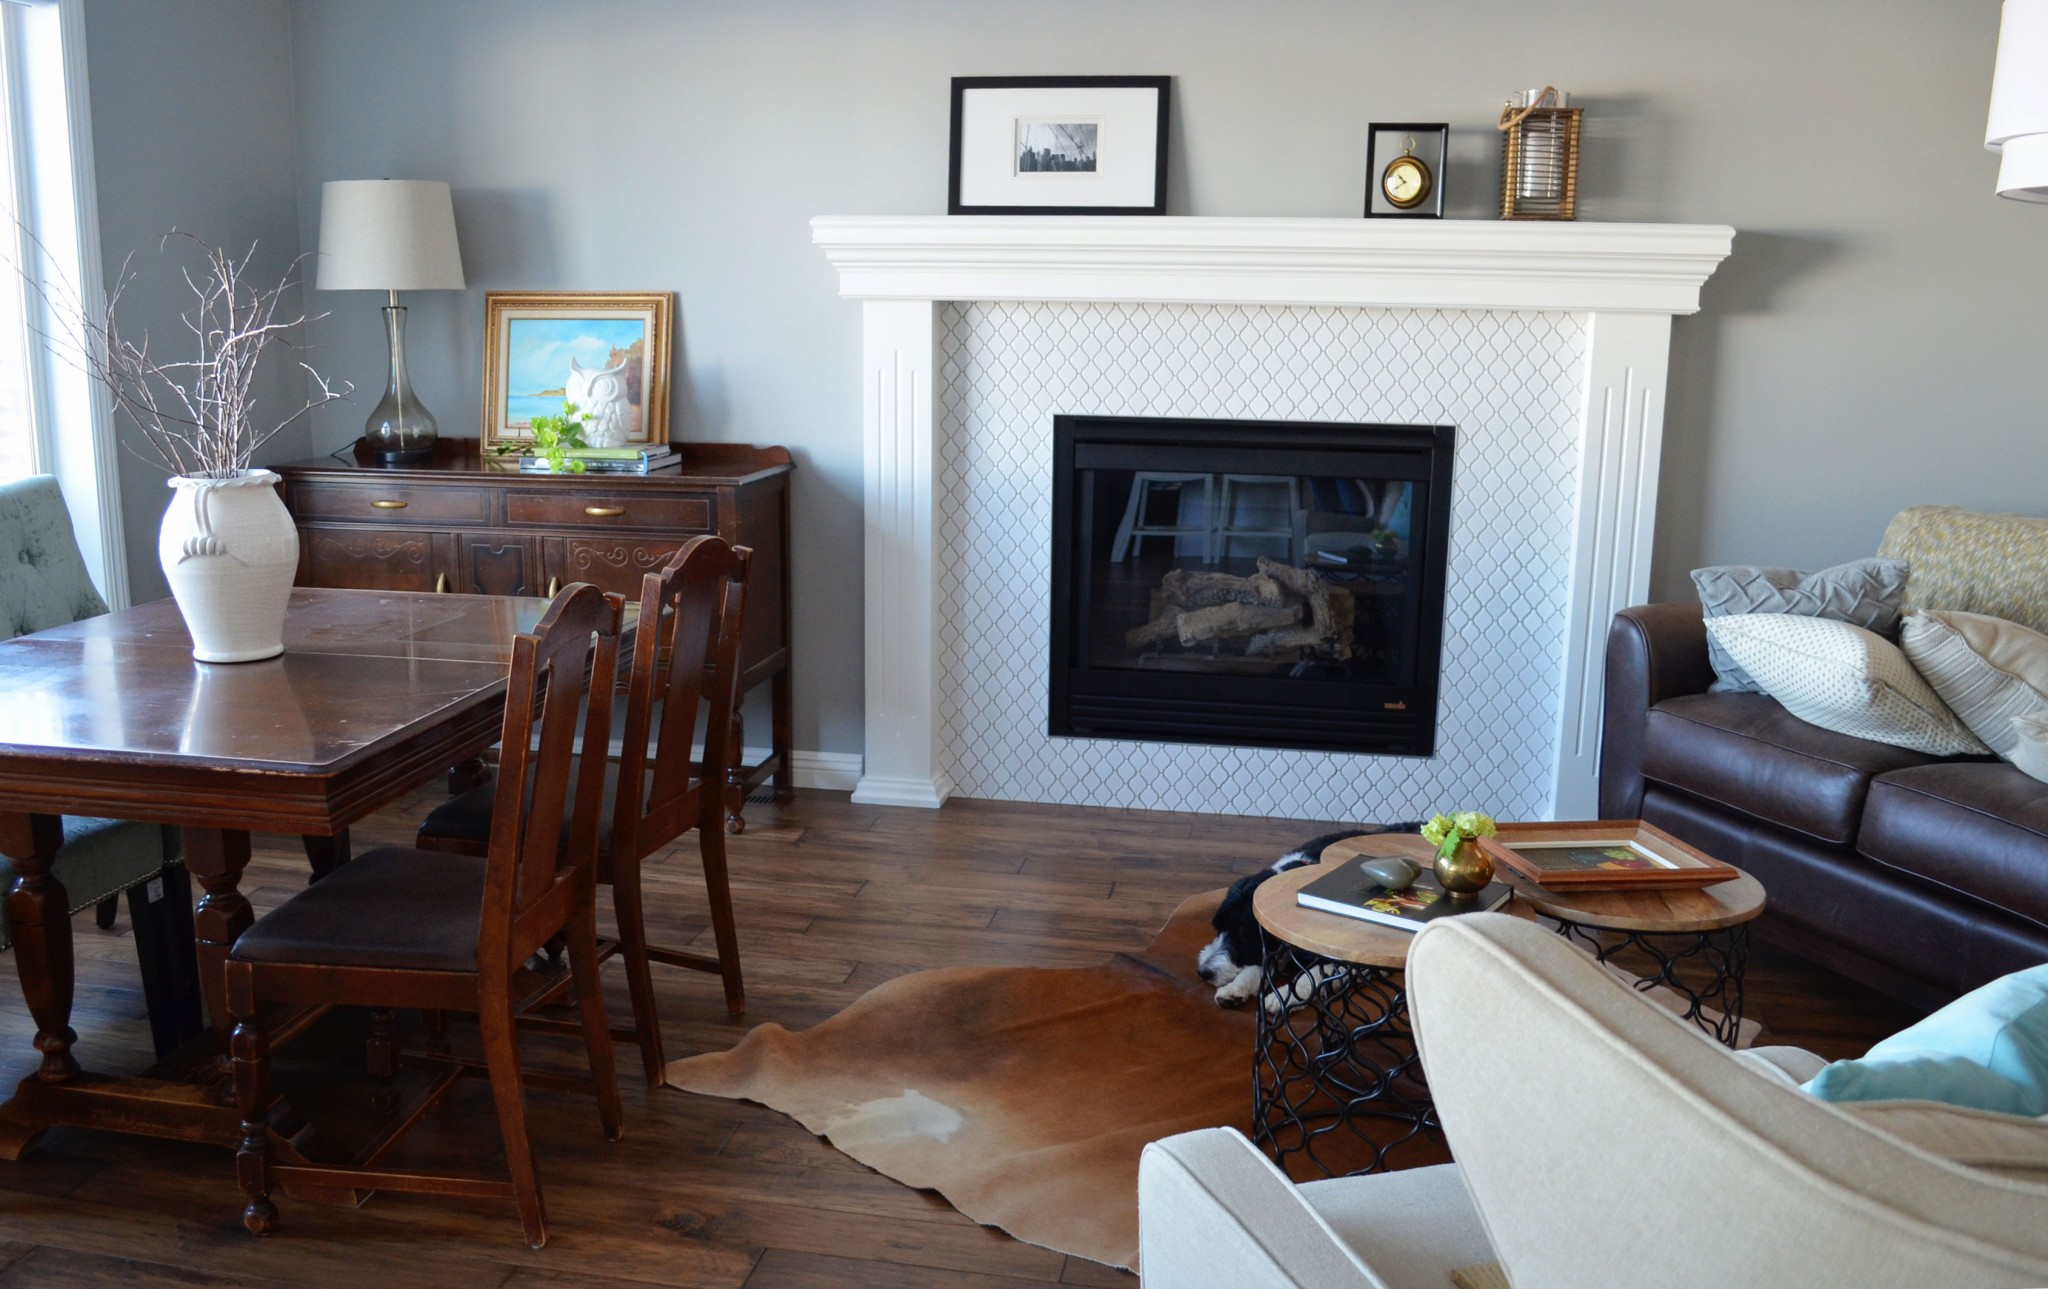 Transitional fireplace surround with modern white tile